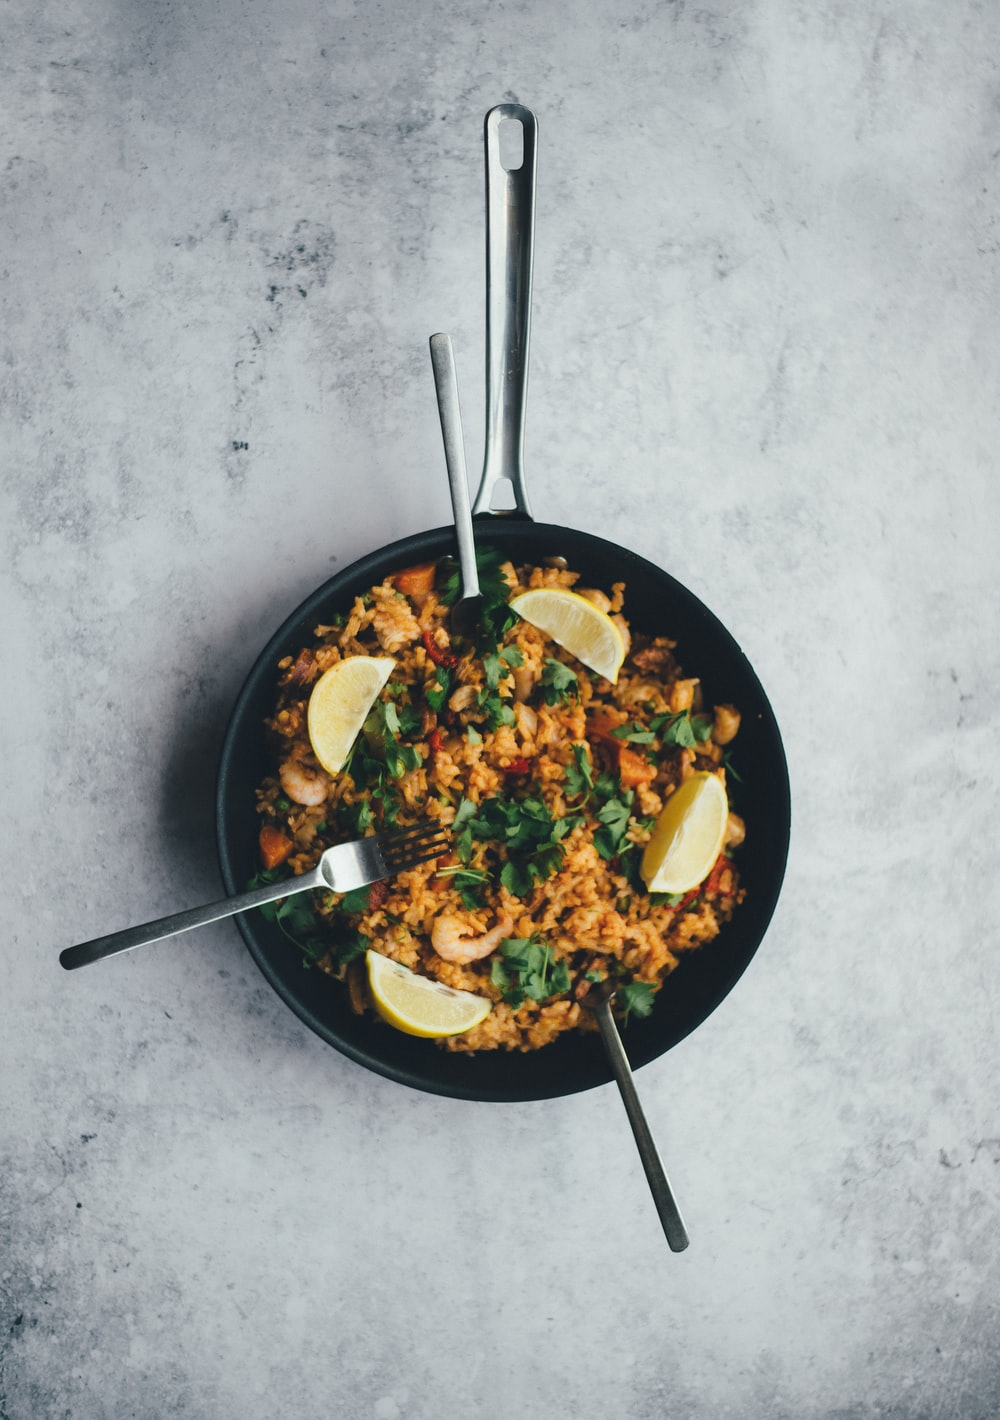 cooked food on black frying pan